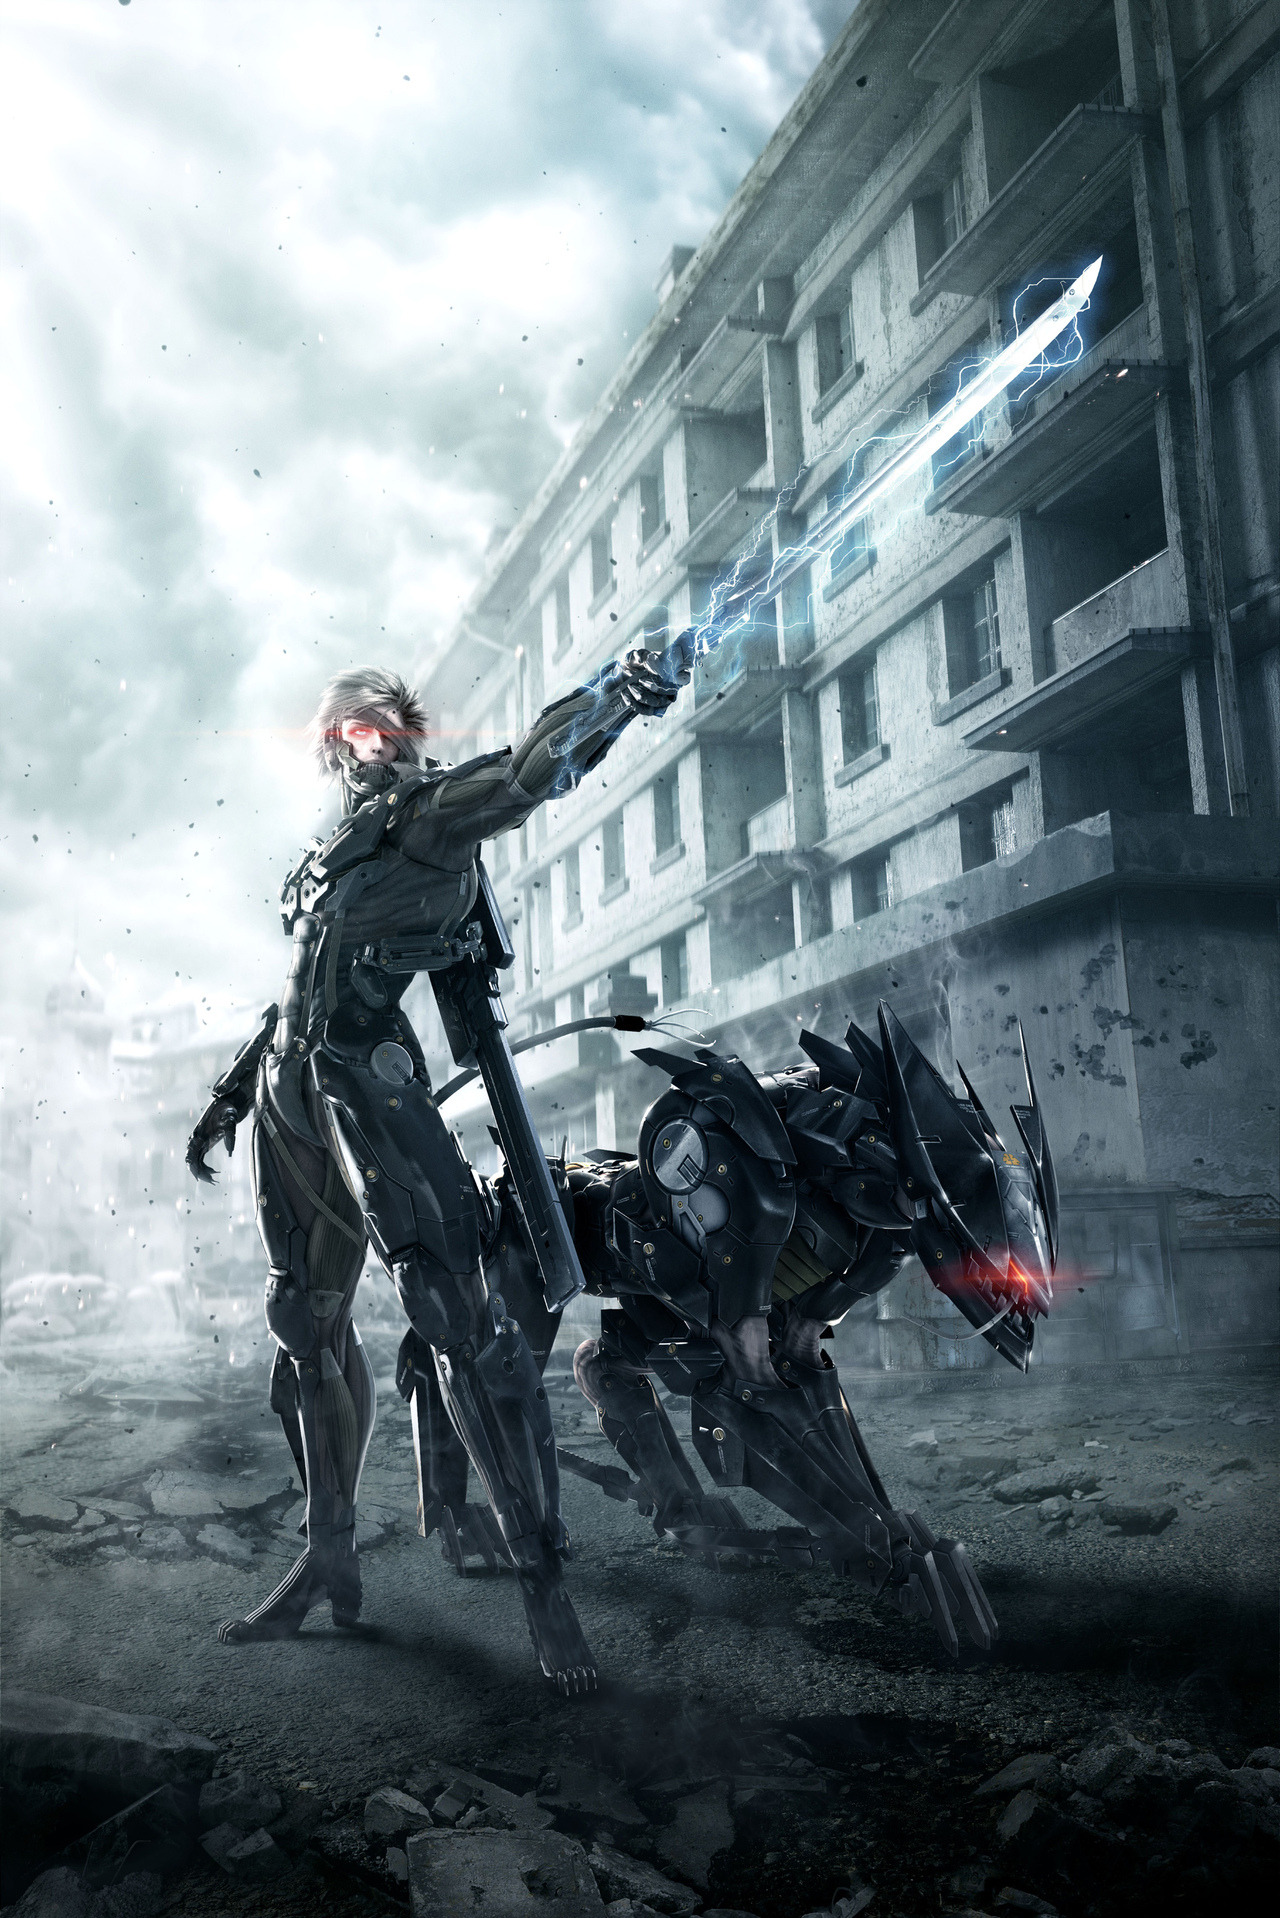 galaxynextdoor:  Metal Gear Rising Promotional art